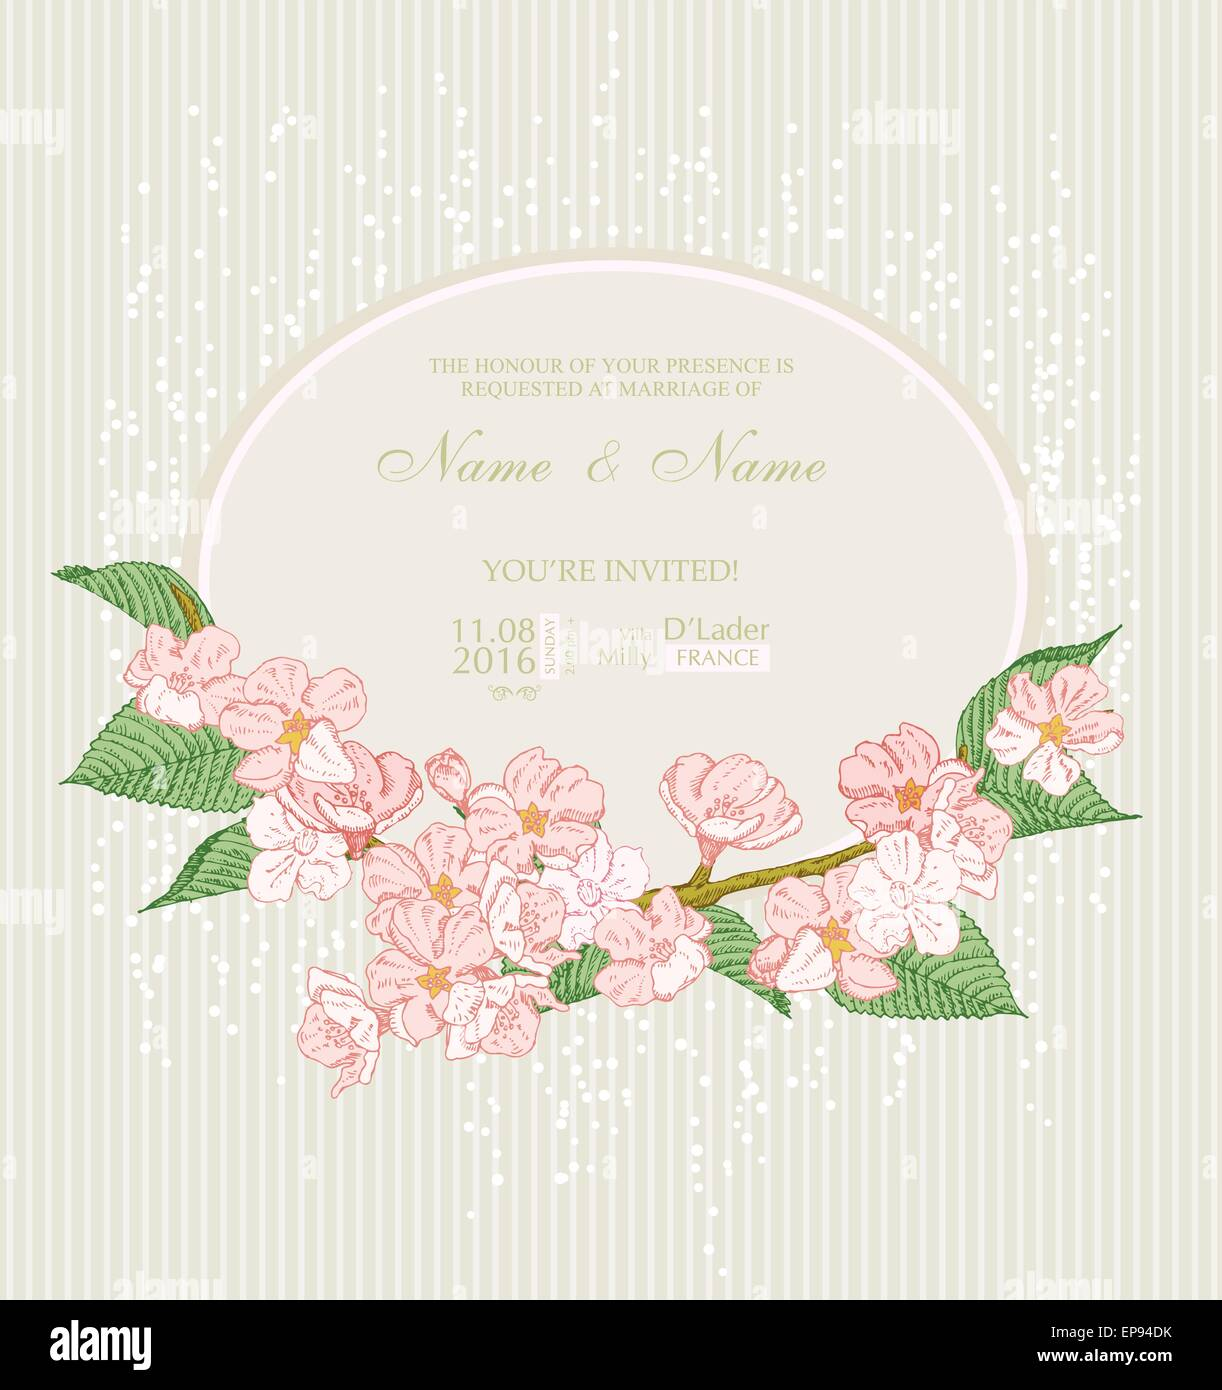 Wedding invitation with flowers. Spring apple blossom. Floral Stock ...